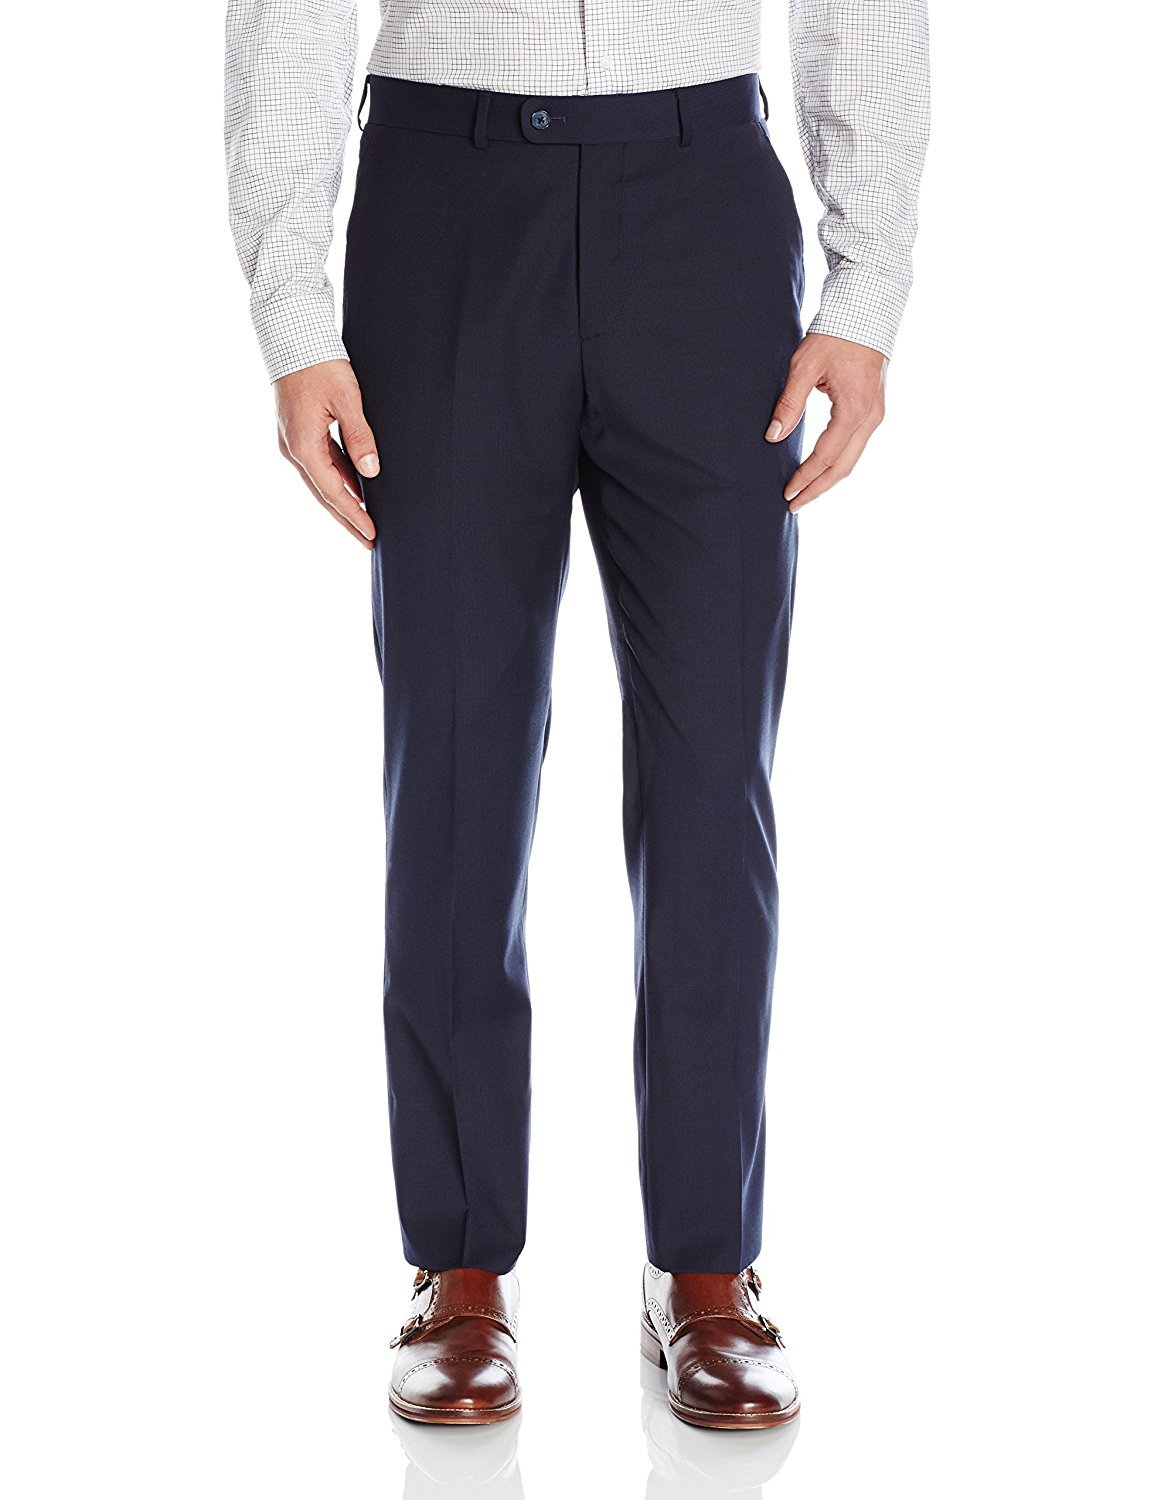 Calvin Klein X-Treme Slim Fit Dress Pants for Men Flat Front Trousers (42W x 32L, Navy)